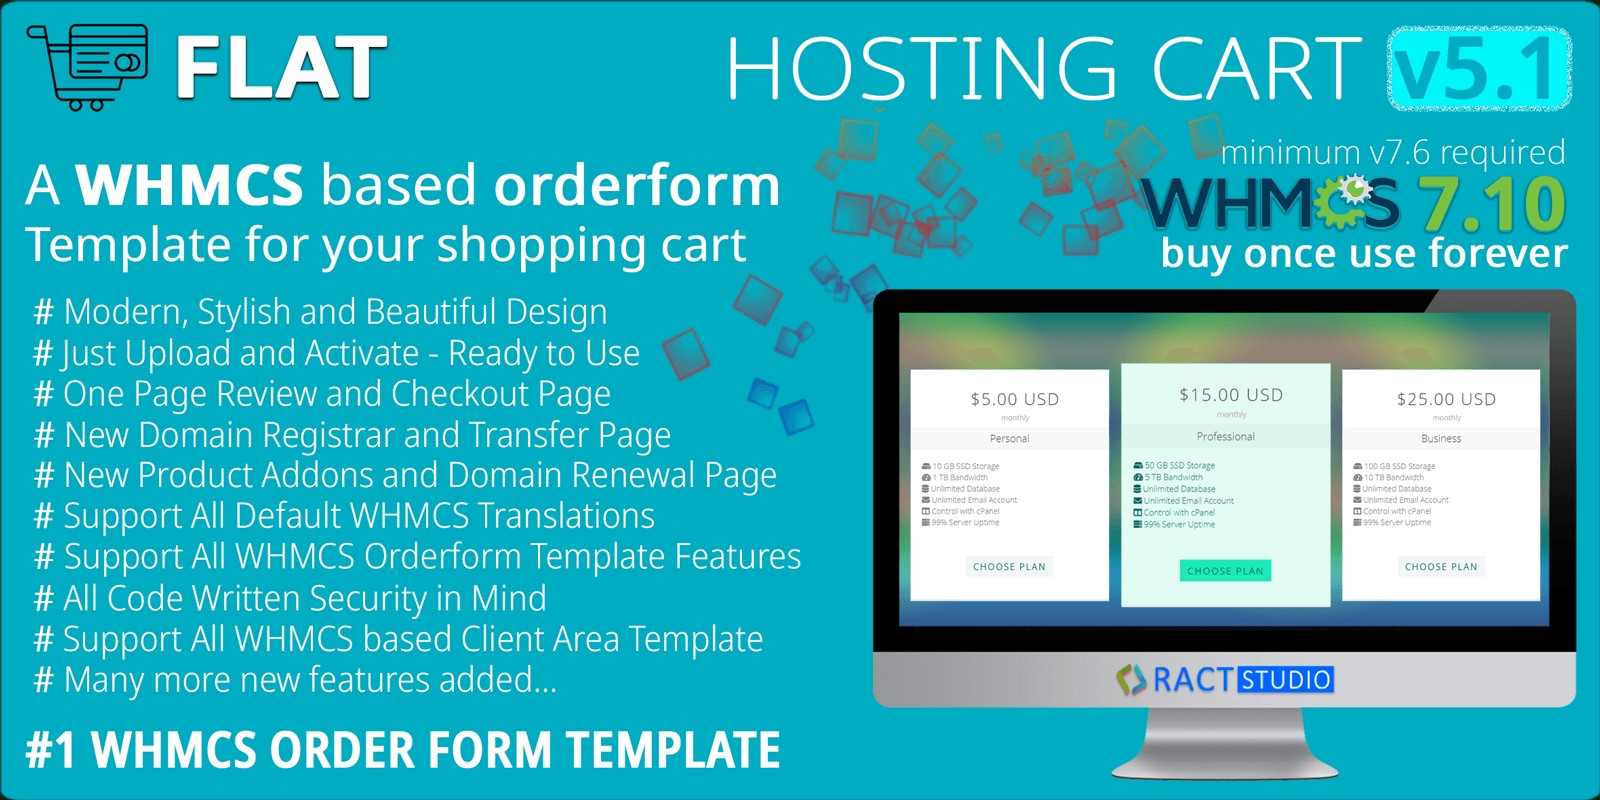 Flat Hosting Cart - WHMCS Order Form Template